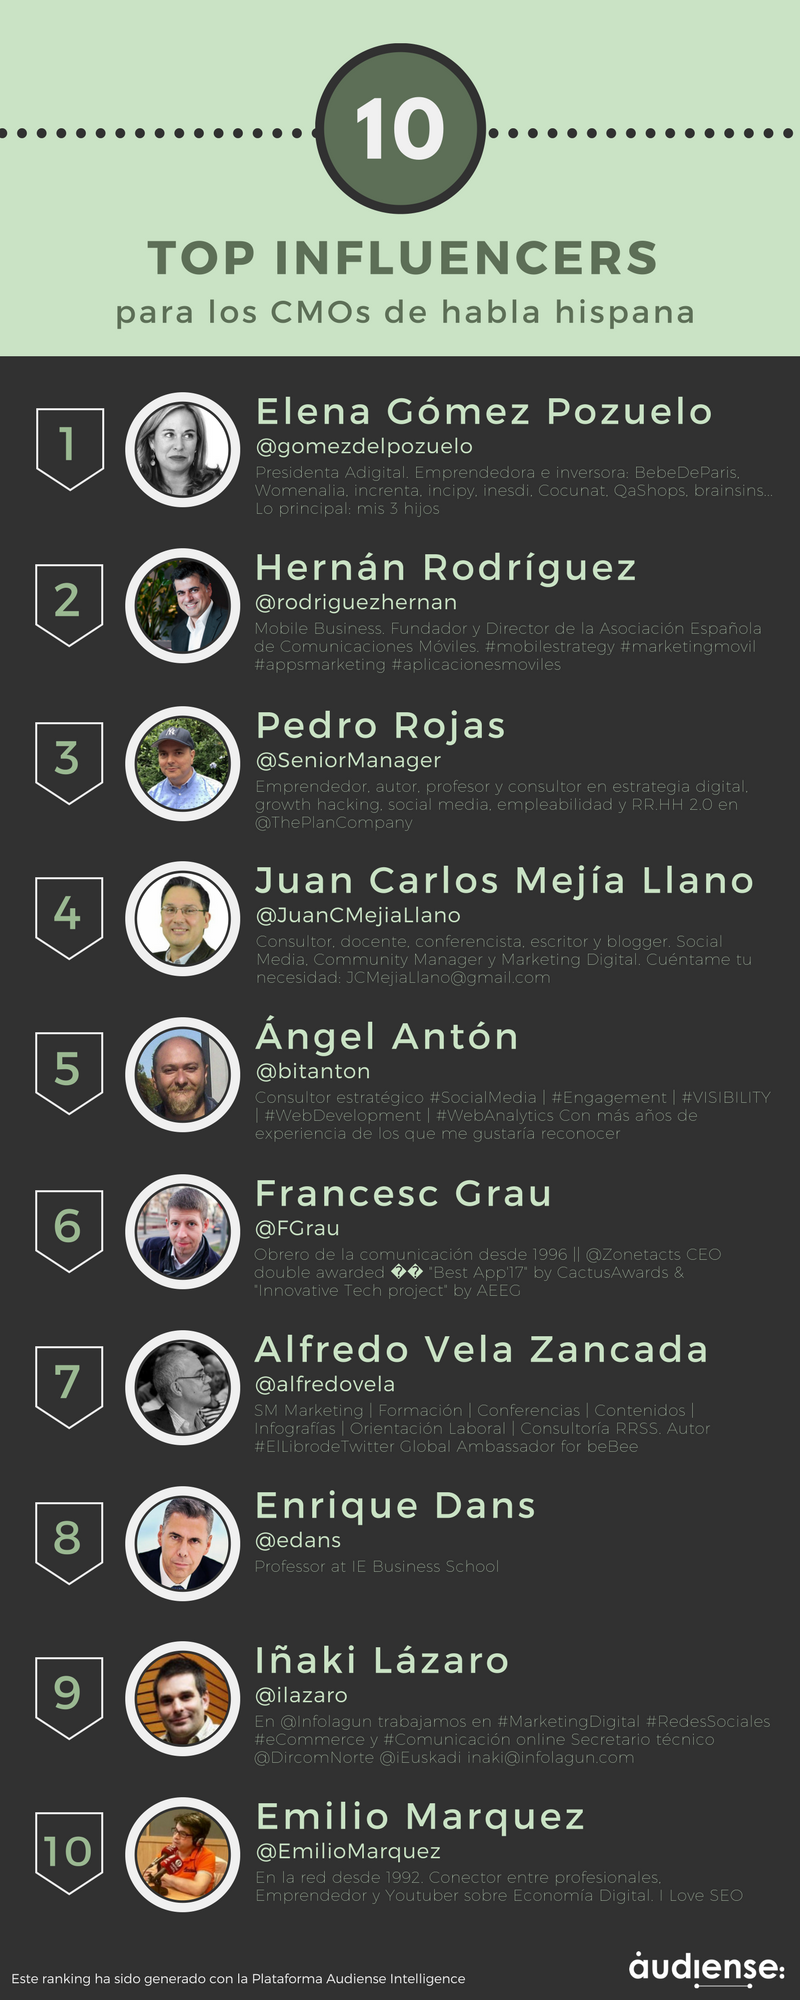 Top influencers entre los Gerentes de Marketing (CMO) de habla hispana